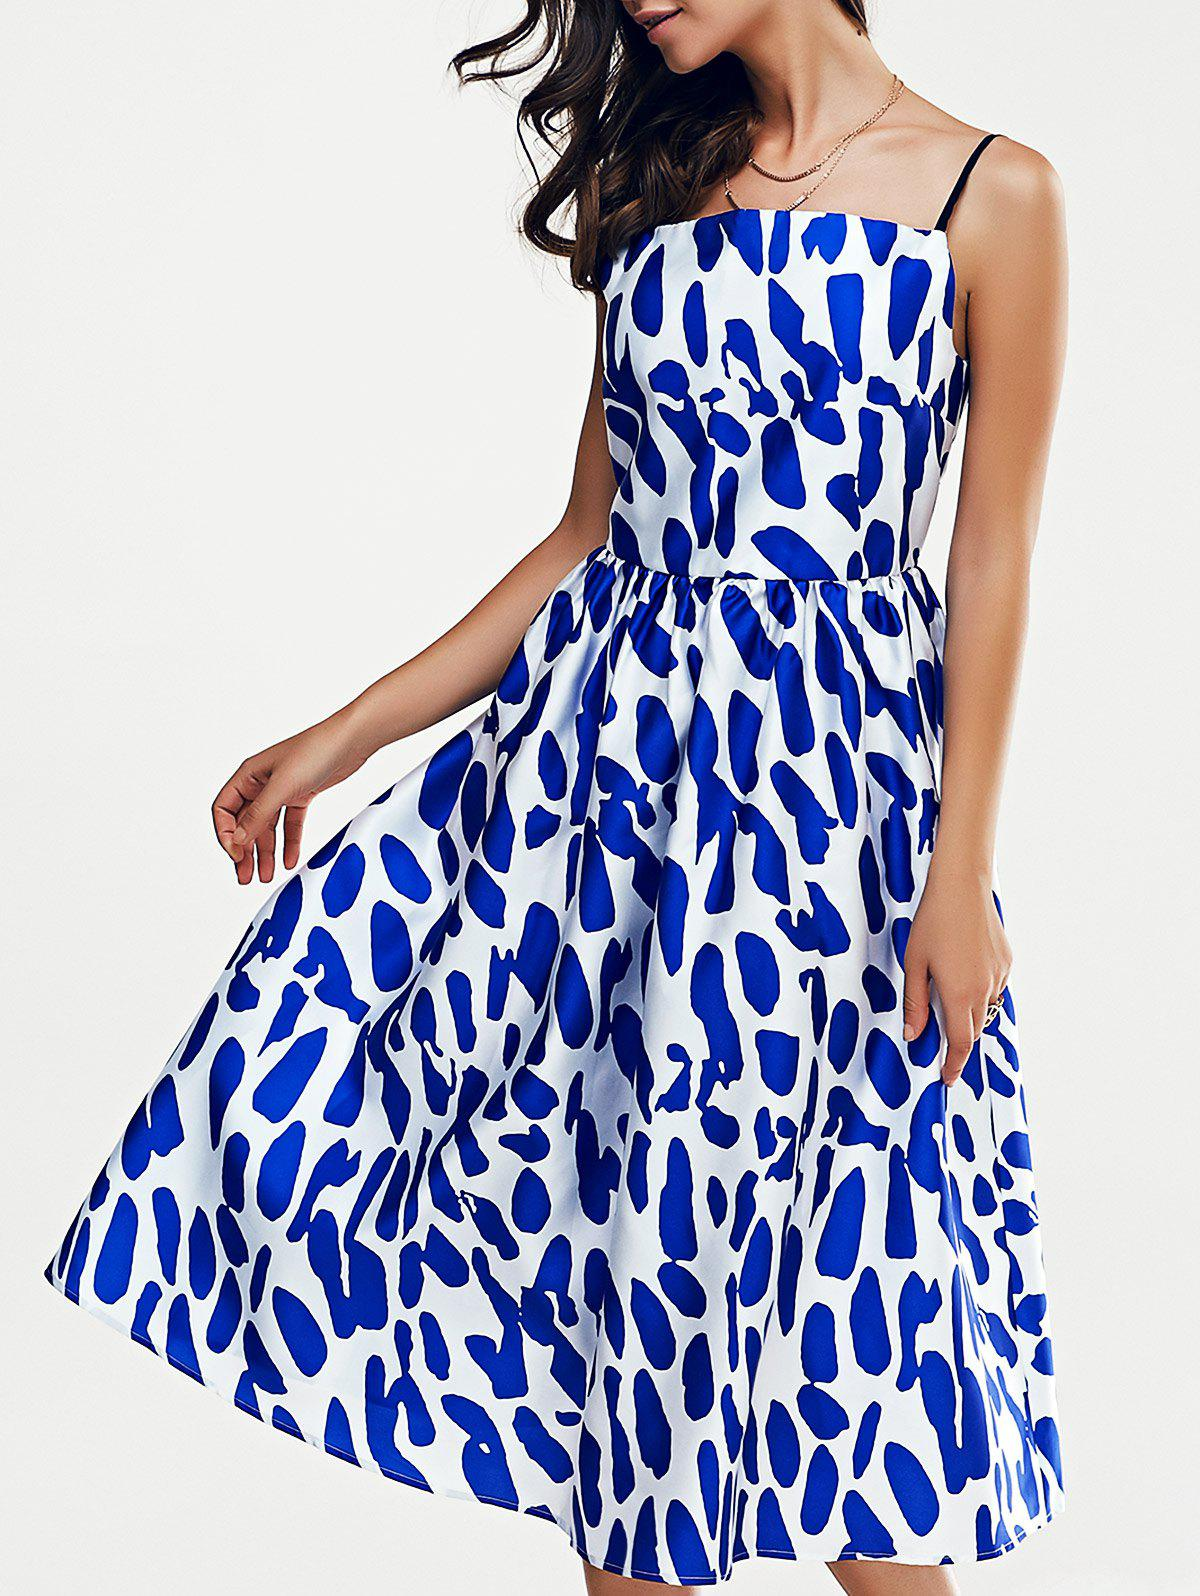 Fashionable Loose-Fitting Spaghetti Strap Dress With Printing For Women - BLUE/WHITE L